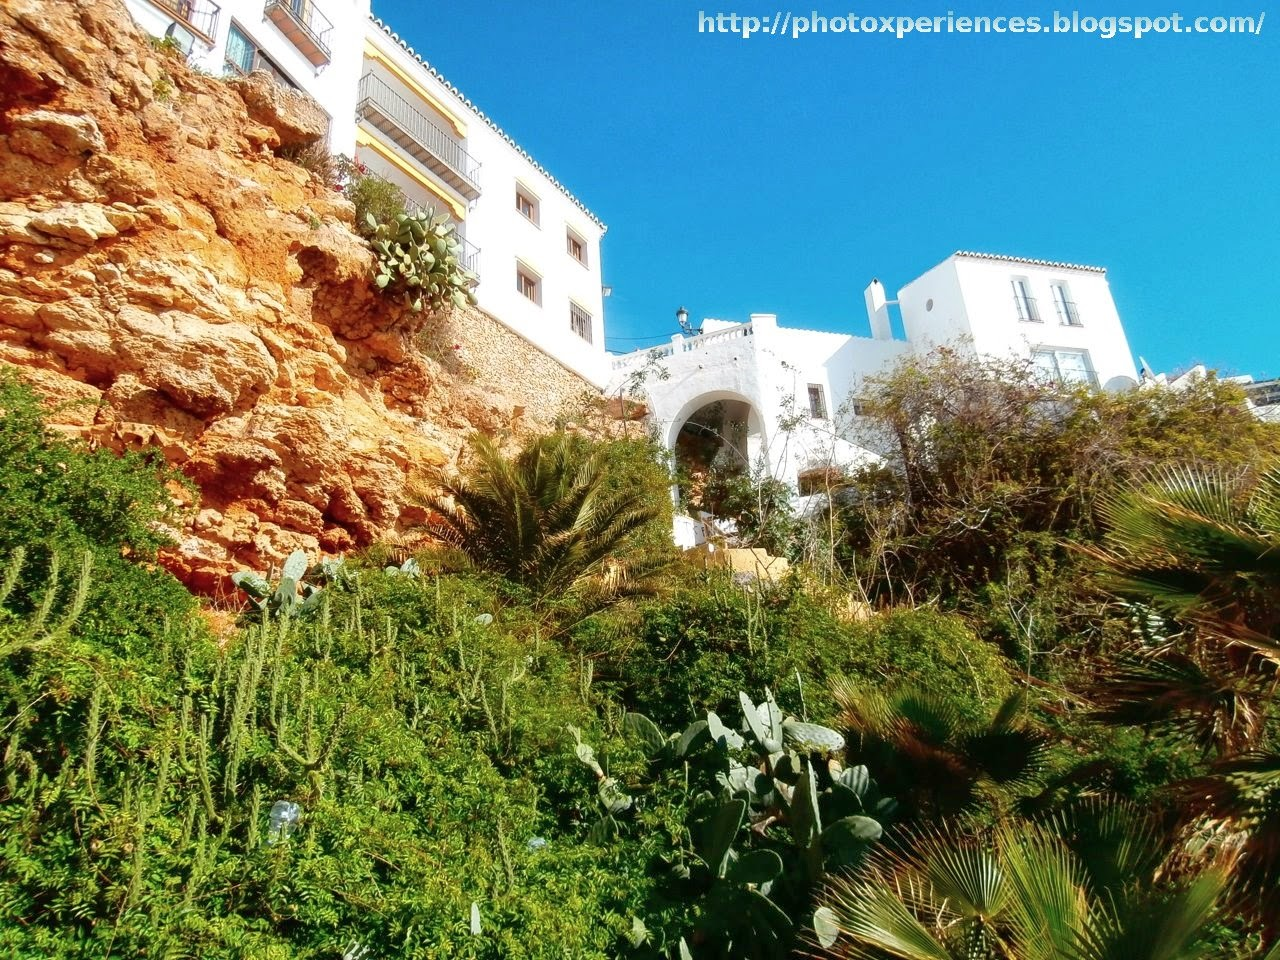 Cliffs and beach of Carabeo in Nerja. Acantilados y playa de Carabeo en Nerja.